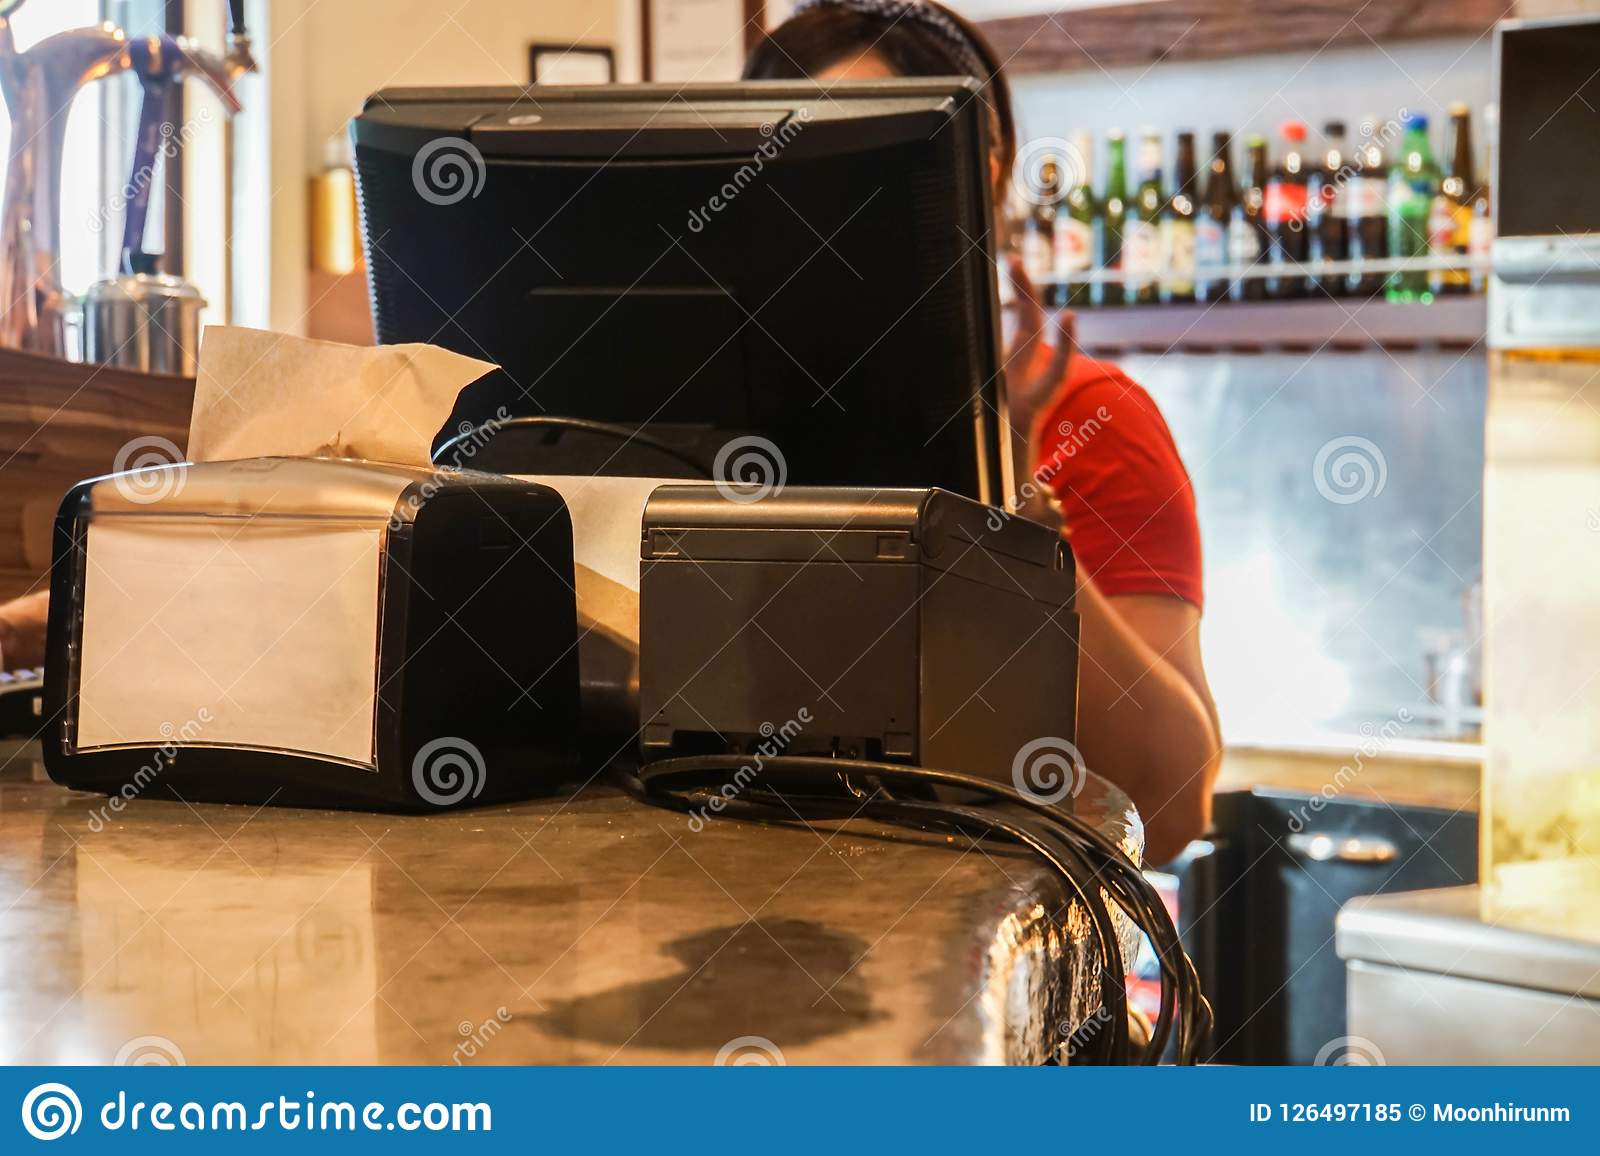 Cashier counter with computer for billing in fast food restaurant